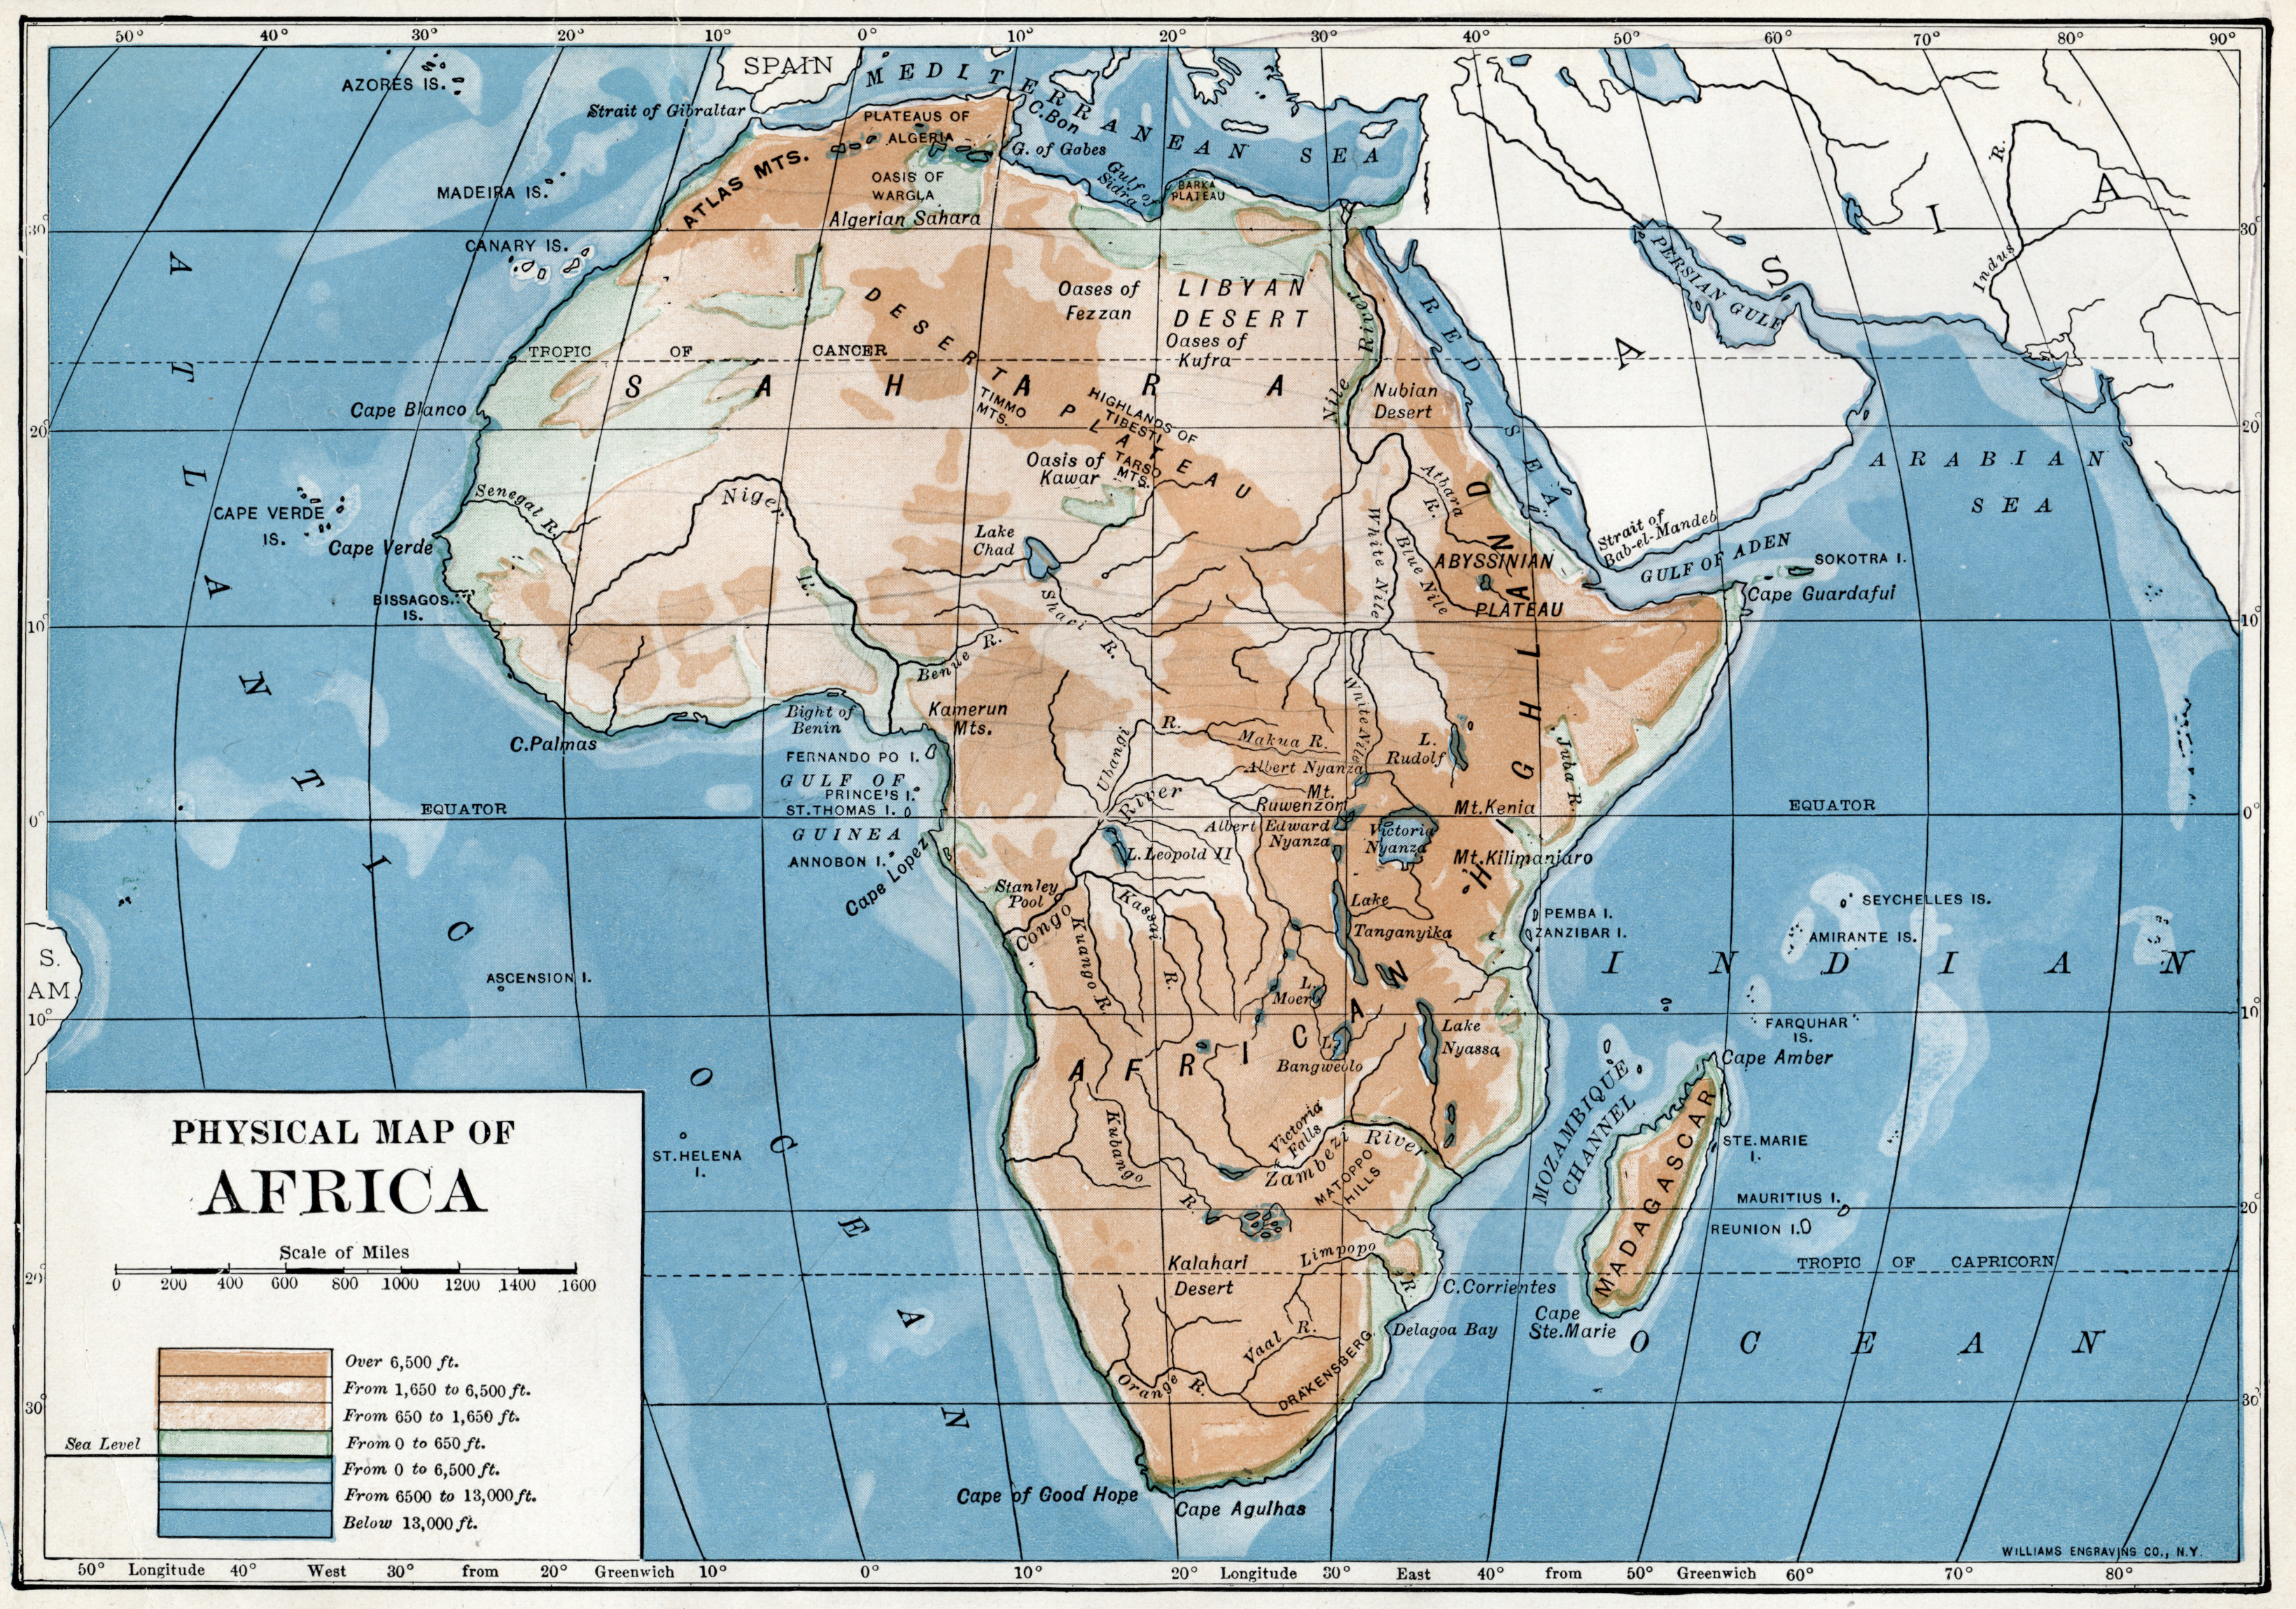 Map Africa File:1916 Africa physical map.png   Wikimedia Commons